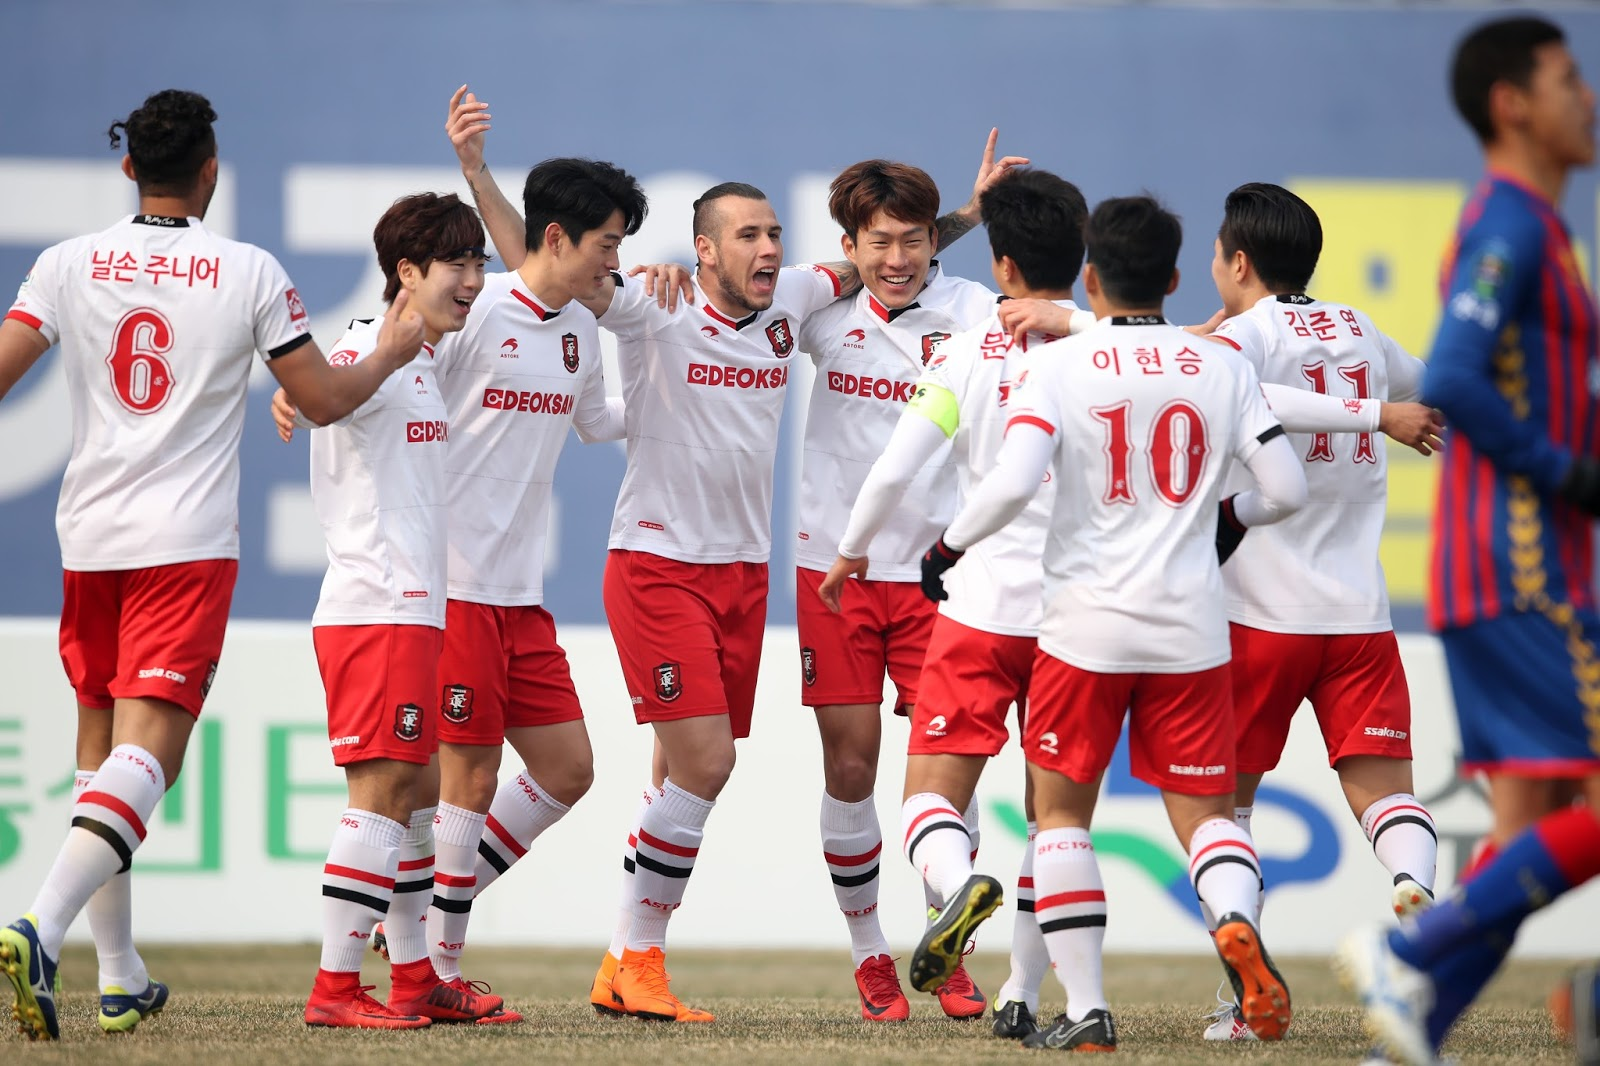 Preview: K League 2 Round 9